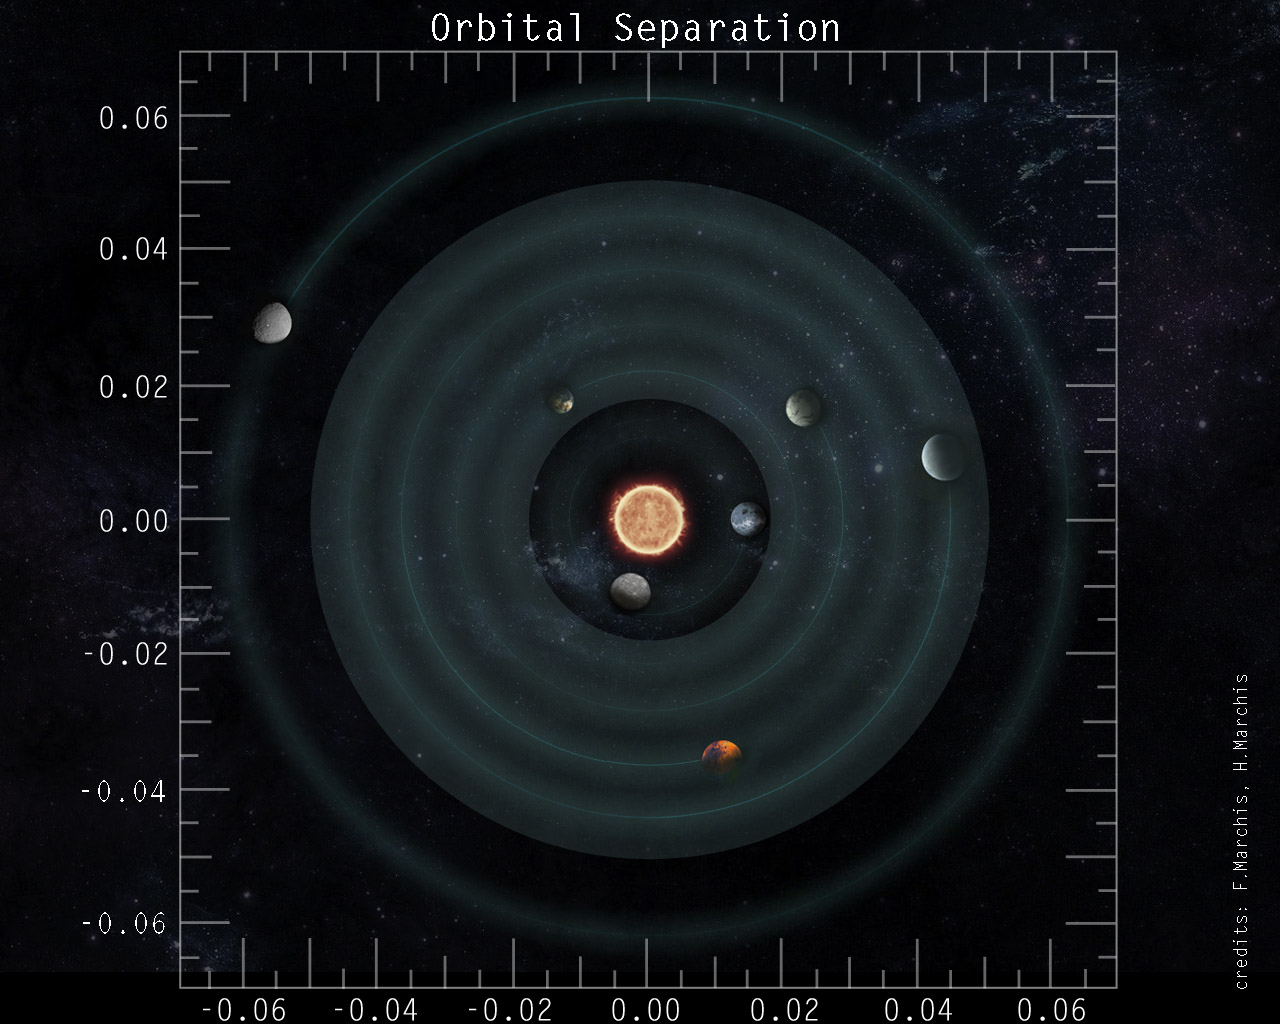 Top view of the Trappist-1 Planetary System showing the orbits of the seven Earth-like exoplanets. (The red dwarf is not to scale)